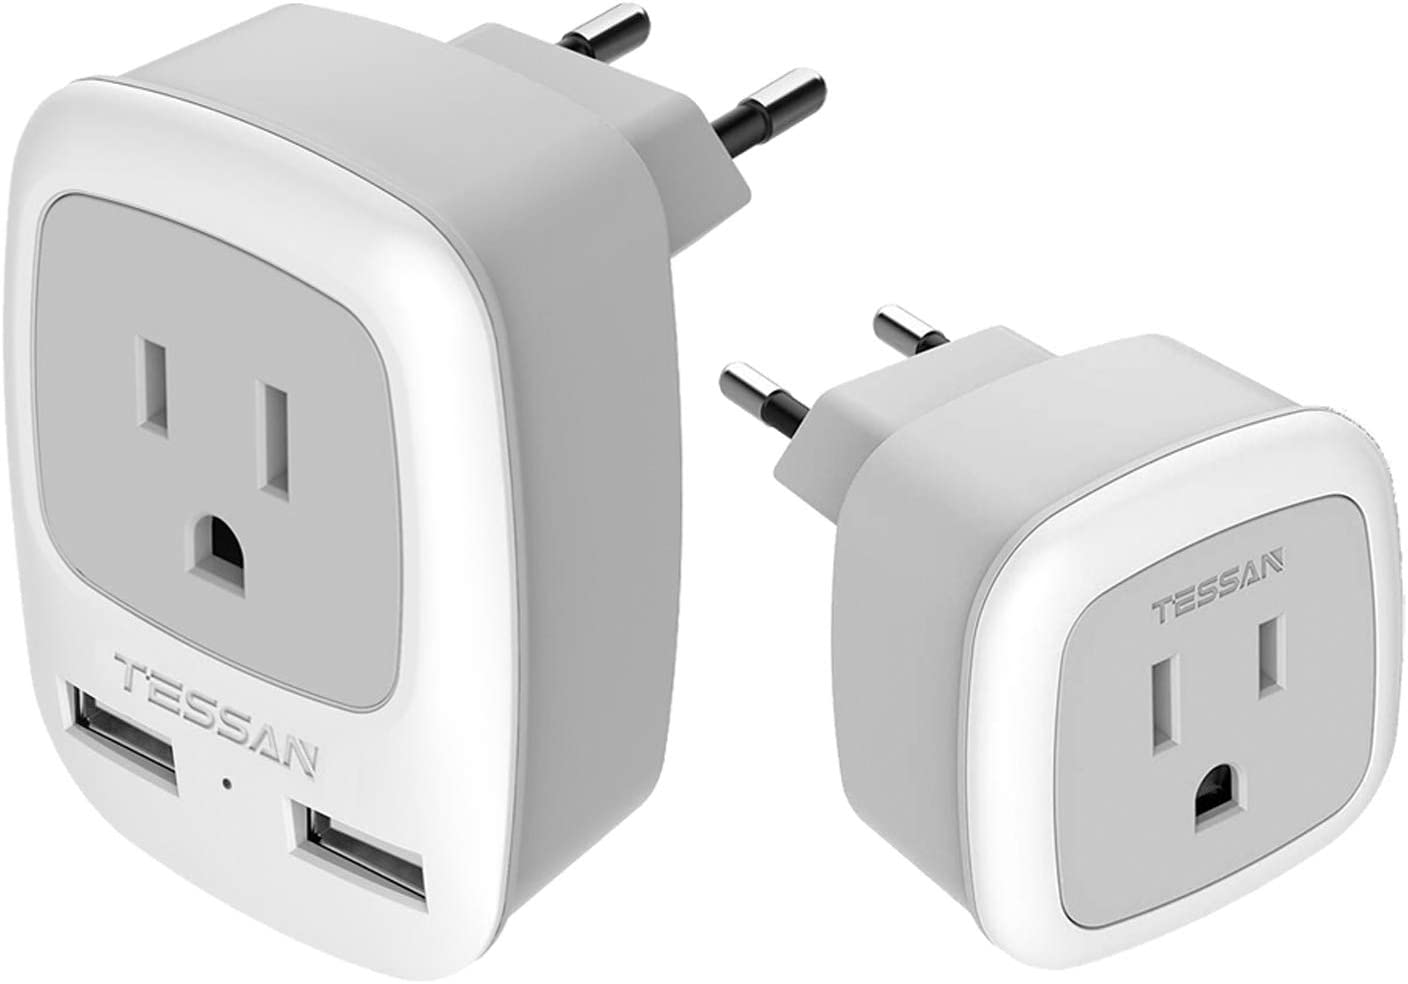 European Travel Plug Adapter, TESSAN Type C International Power Outlet with 2 USB, Come with Compact European Charger Adaptor, US to Most of Europe EU Israel Spain Iceland Germany France Italy